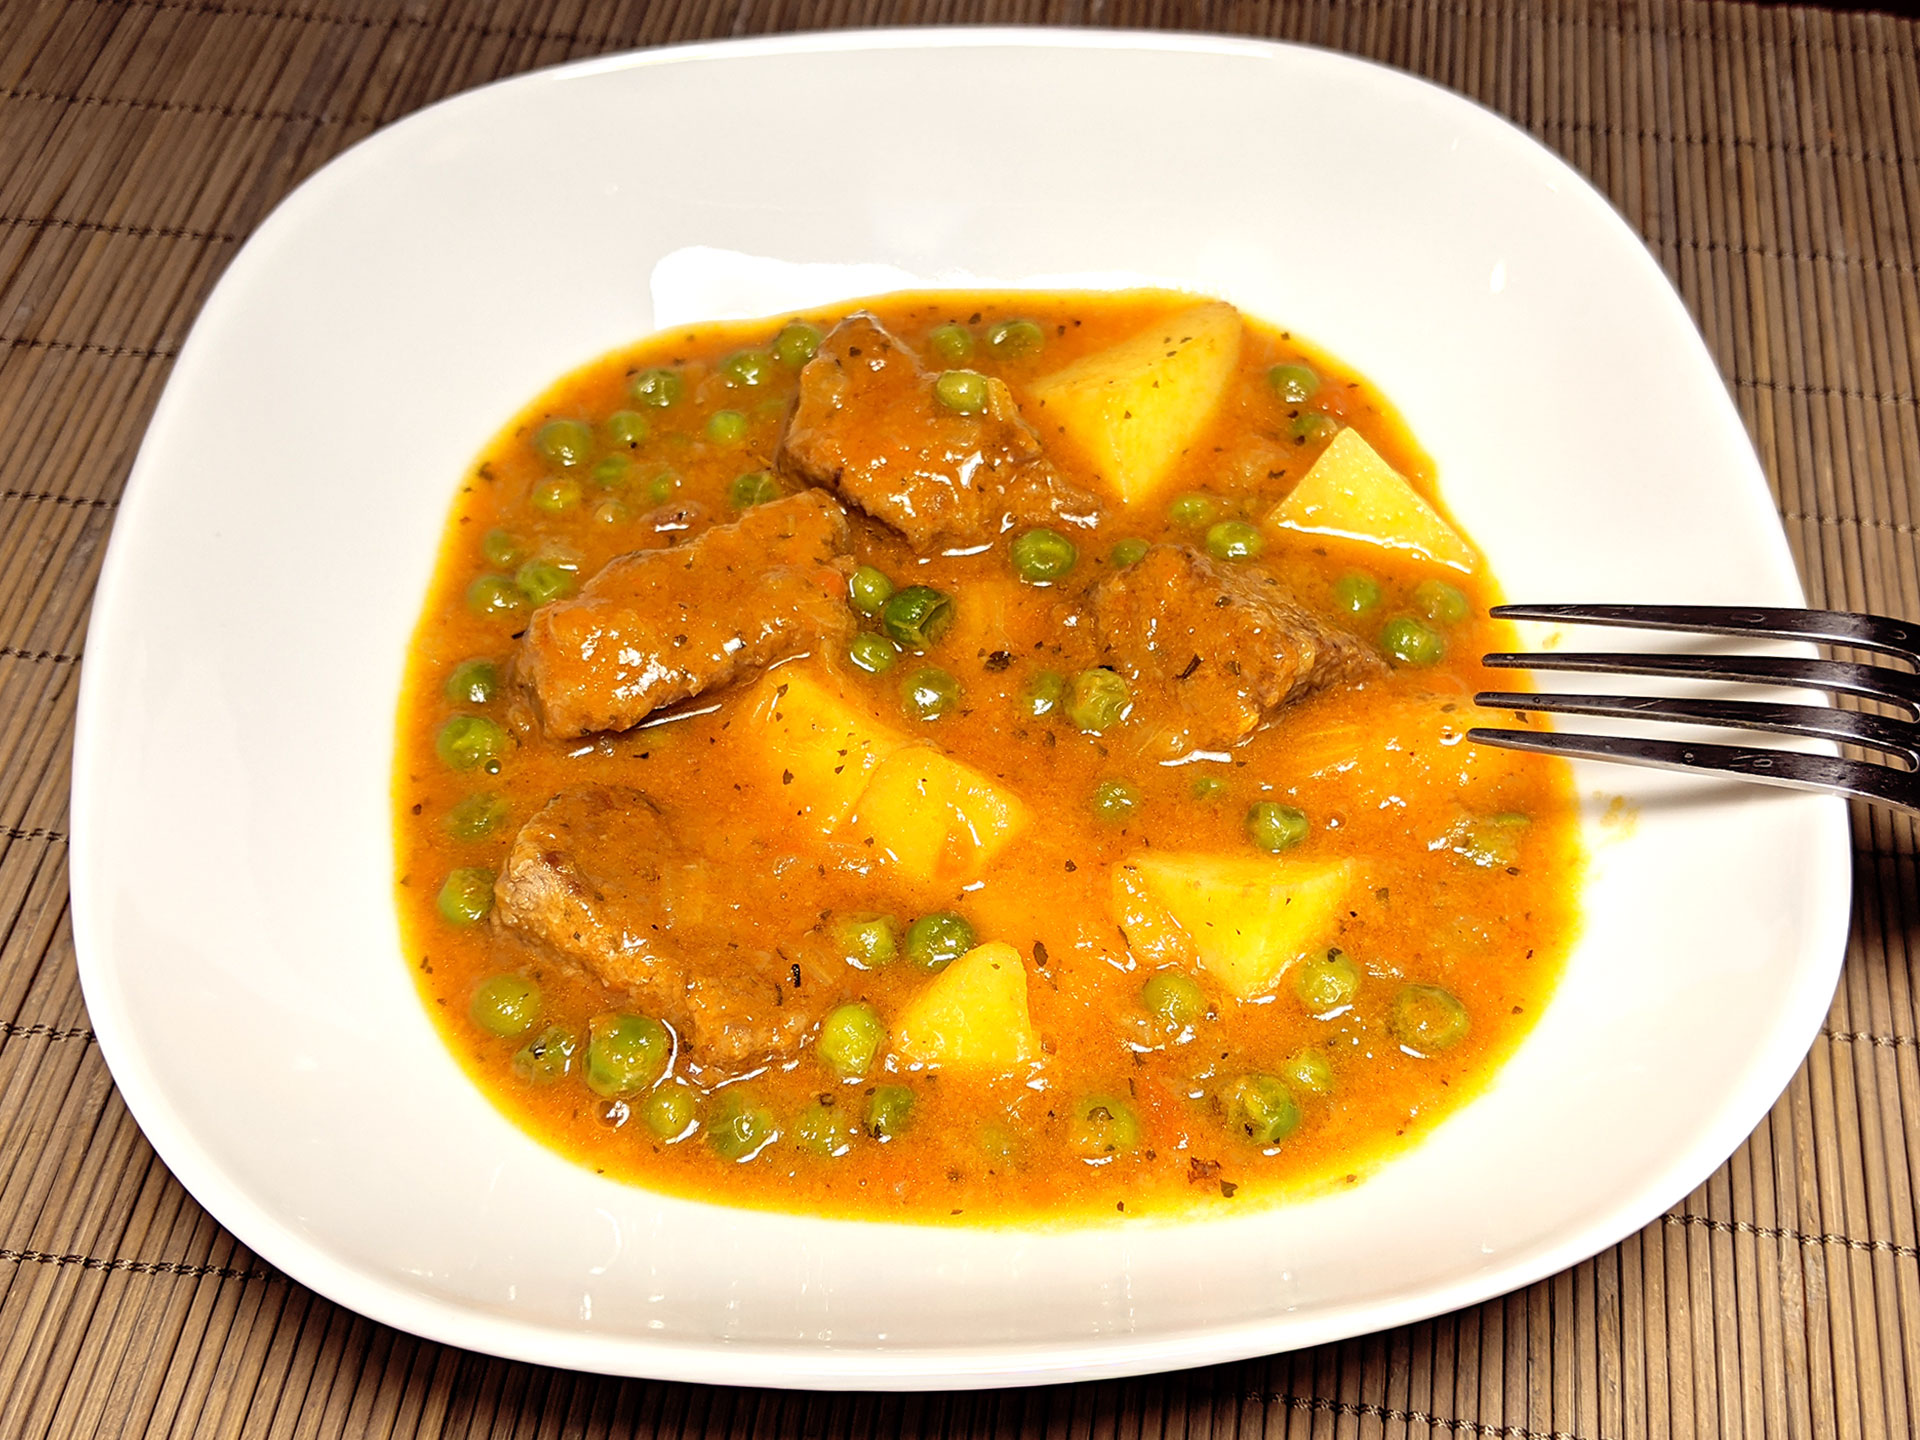 Veal stew with potatoes and peas (spezzatino con patate e piselli) ~ Recipes Second courses  ~ La ragazza col mattarello